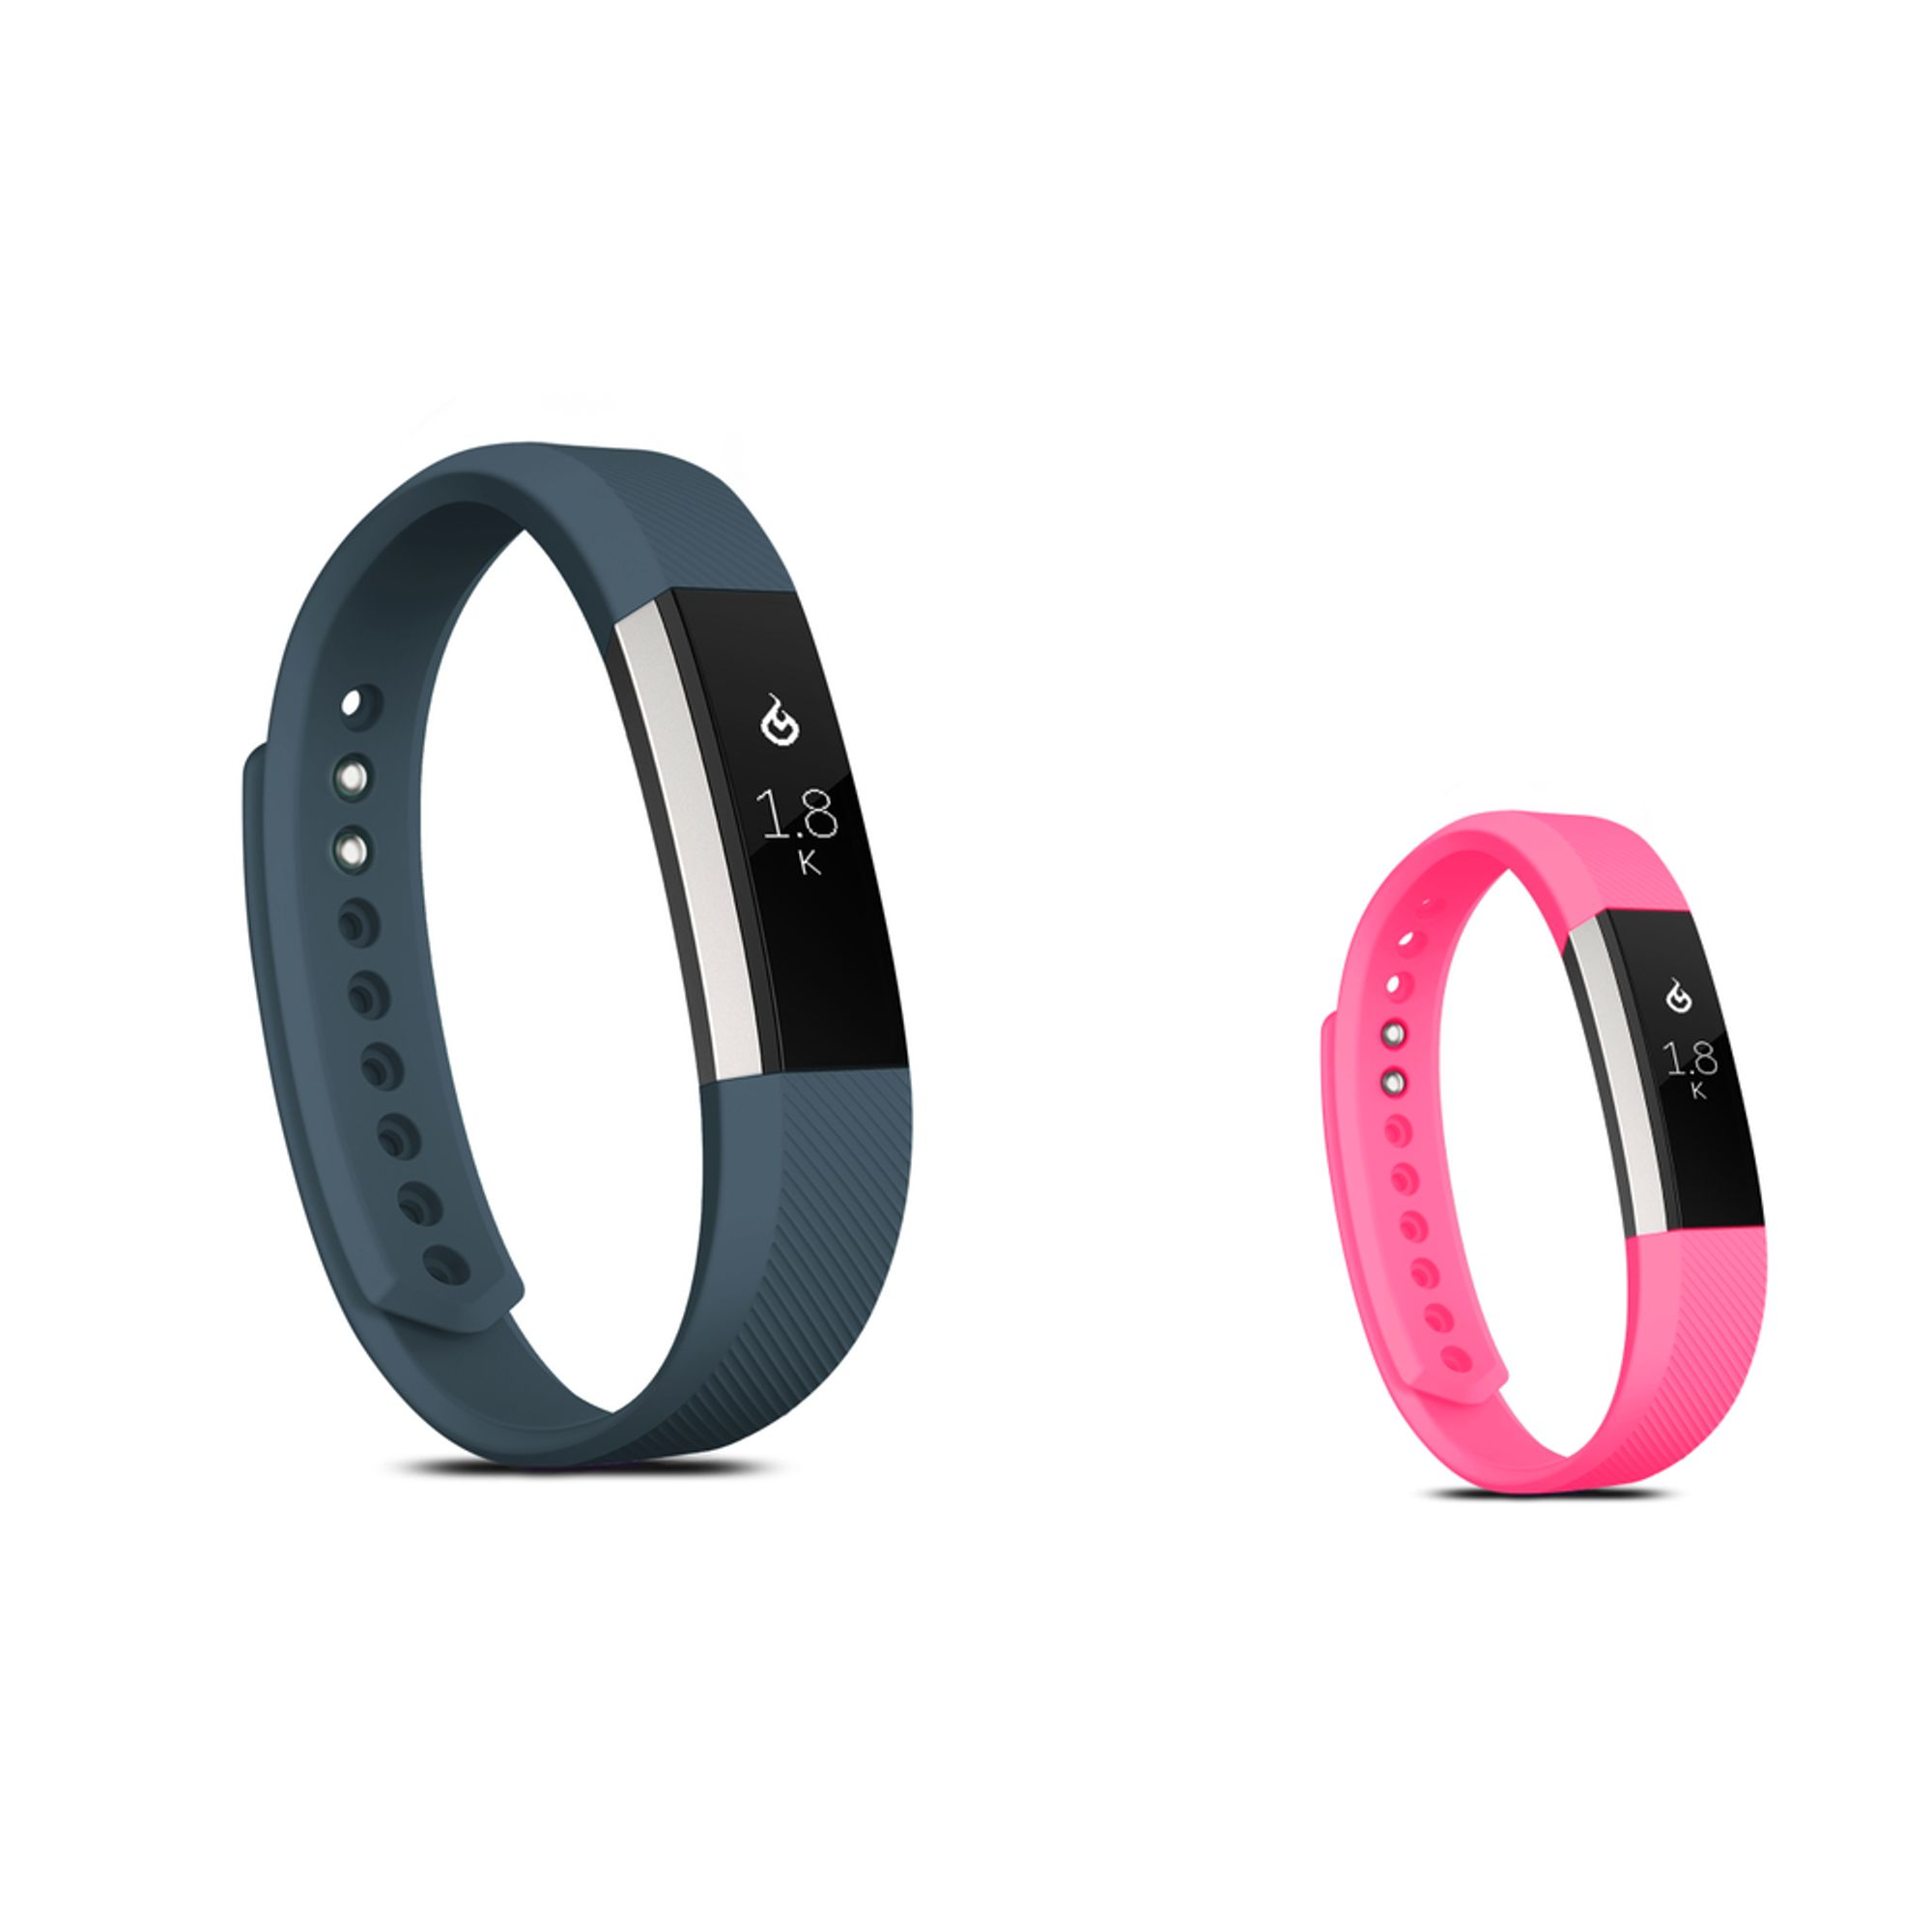 Zodaca Soft TPU Rubber Adjustable Wristbands Watch Band Strap For Fitbit Alta HR / Alta LARGE Size - Dark Gray+Hot Pink